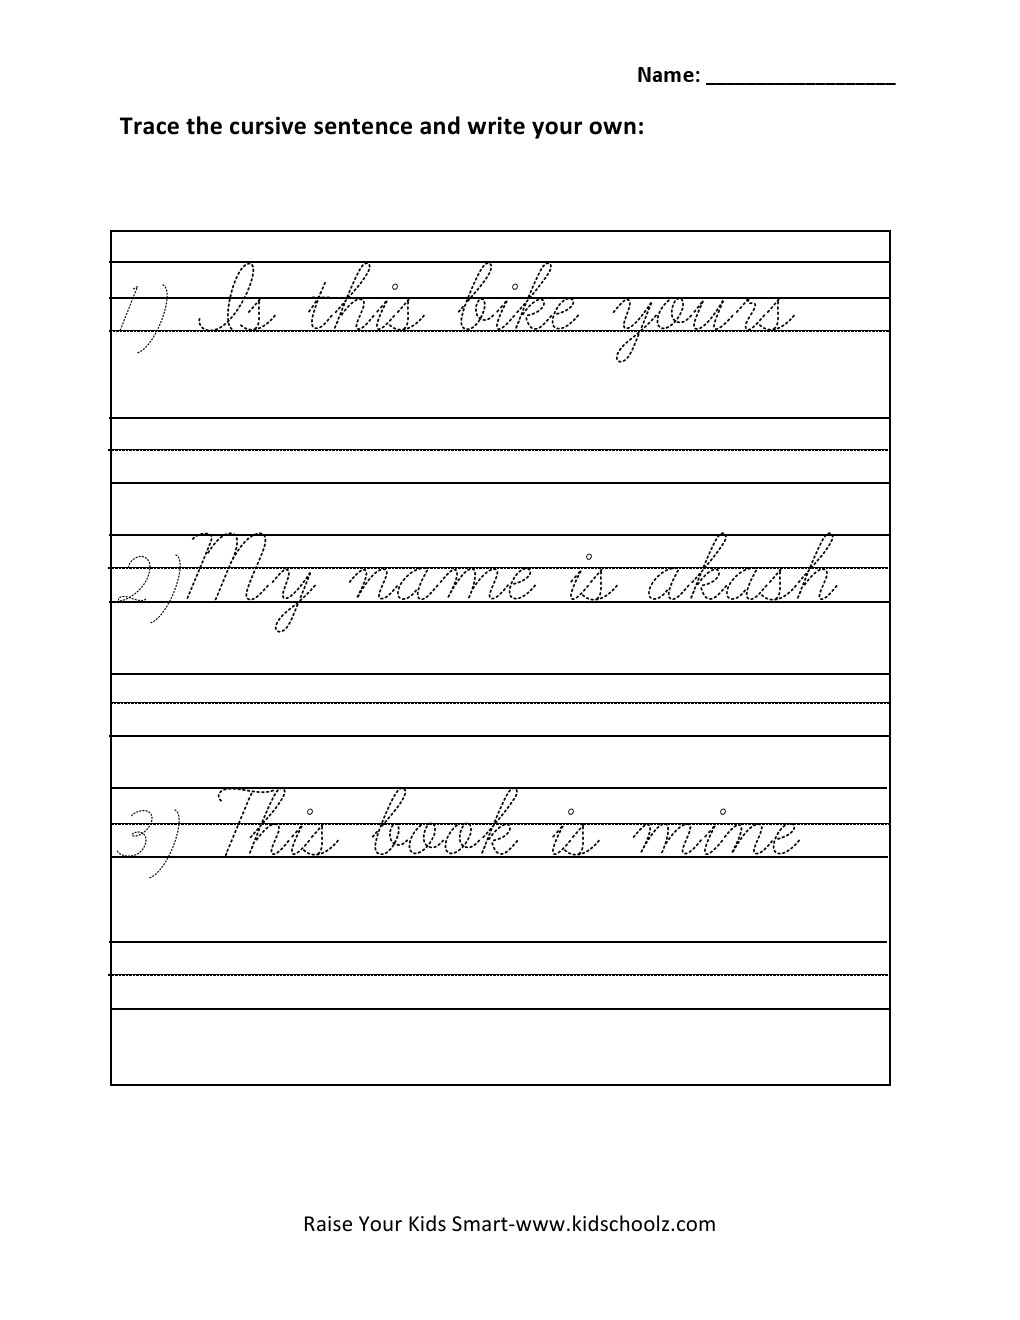 cursive sentence writing worksheets Handwriting based activities very easy handwriting fonts - cursive handwriting - d'nealian style fonts handwriting activity - quick print worksheet make a handwriting activity printable handwriting word search puzzle handwriting word search puzzle cursive writing practice activities, worksheets, printables, and.